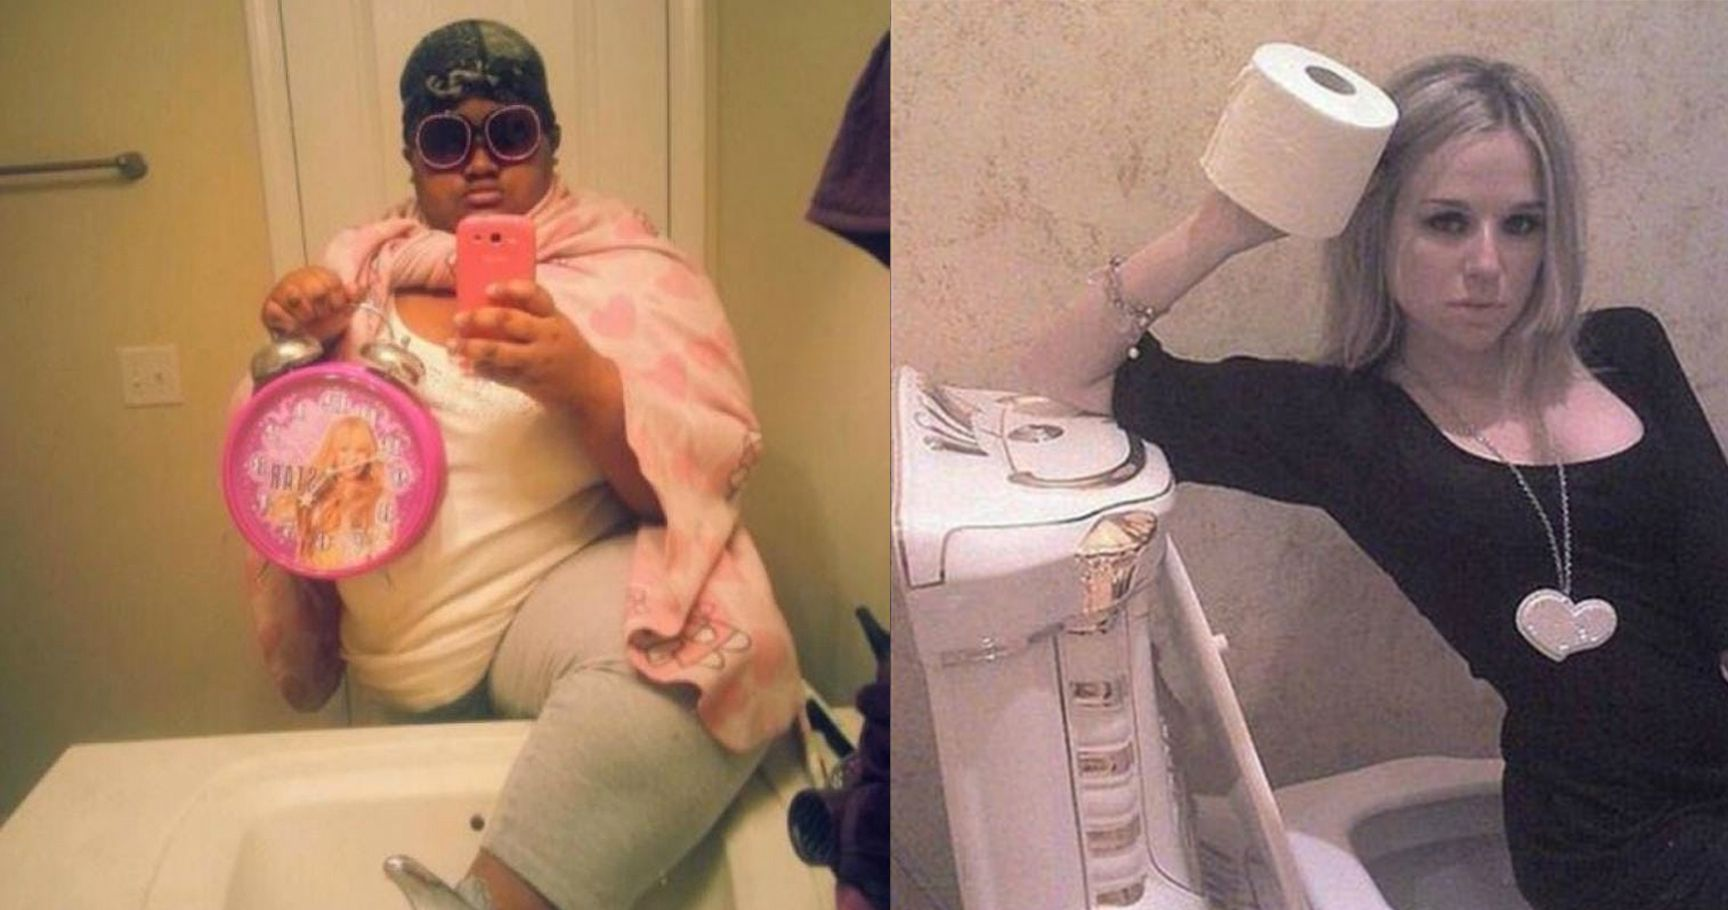 15 Selfies That Raise More Questions Than They Answer